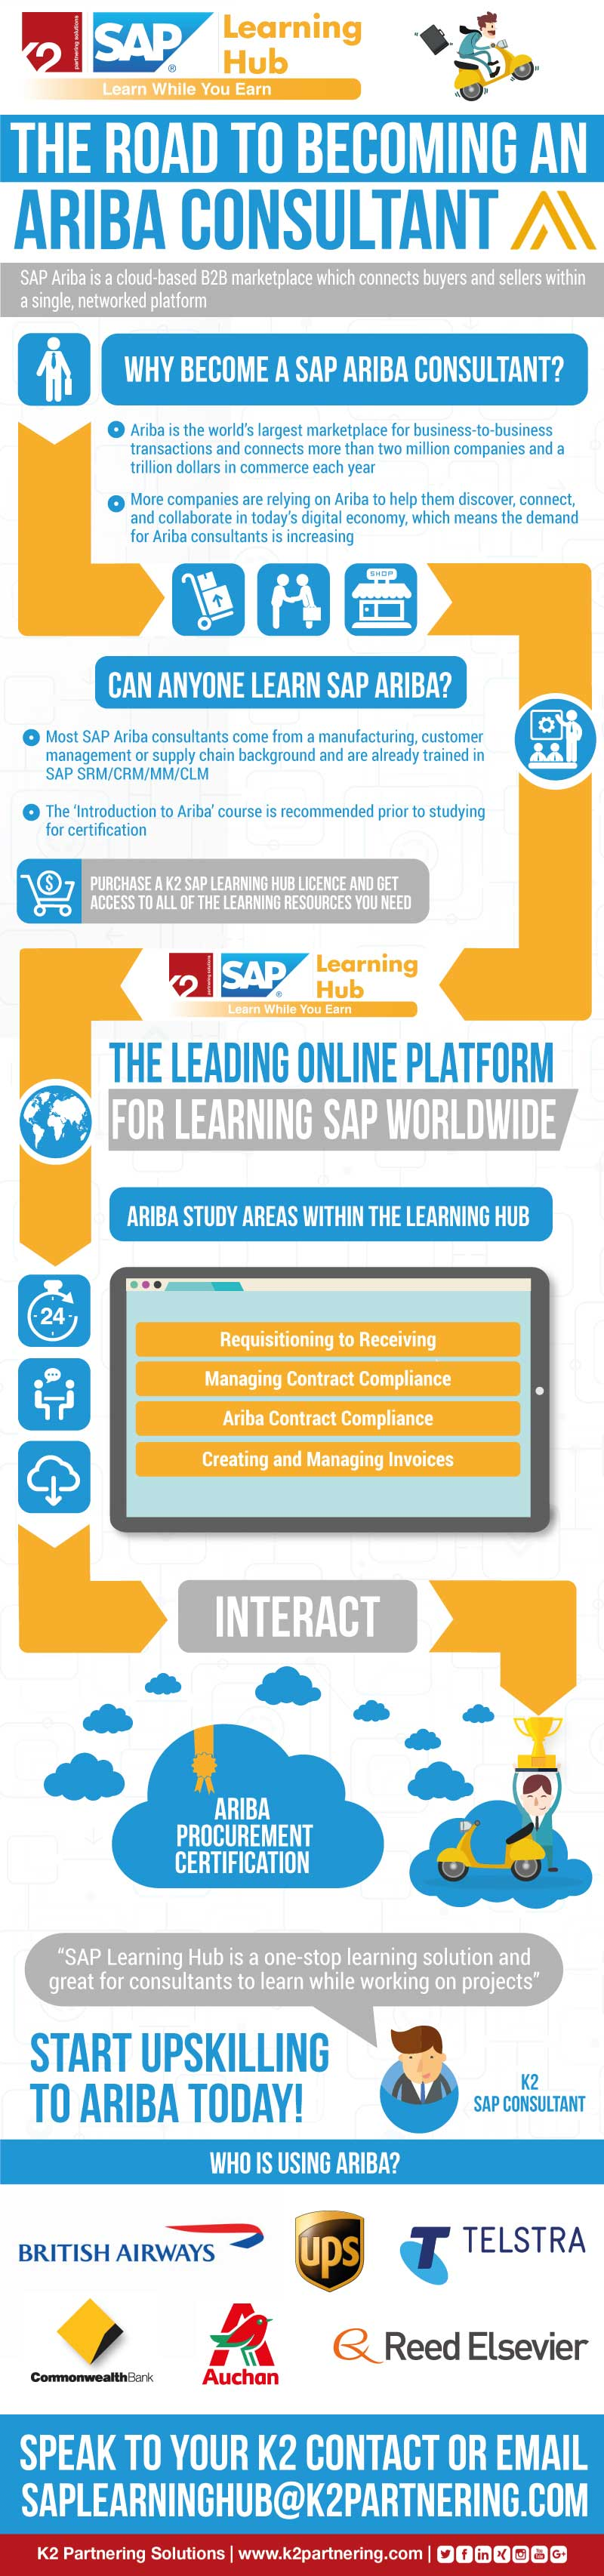 The road to becoming an ariba consultant k2 partnering solutions contact us about k2 sap learning hub xflitez Image collections